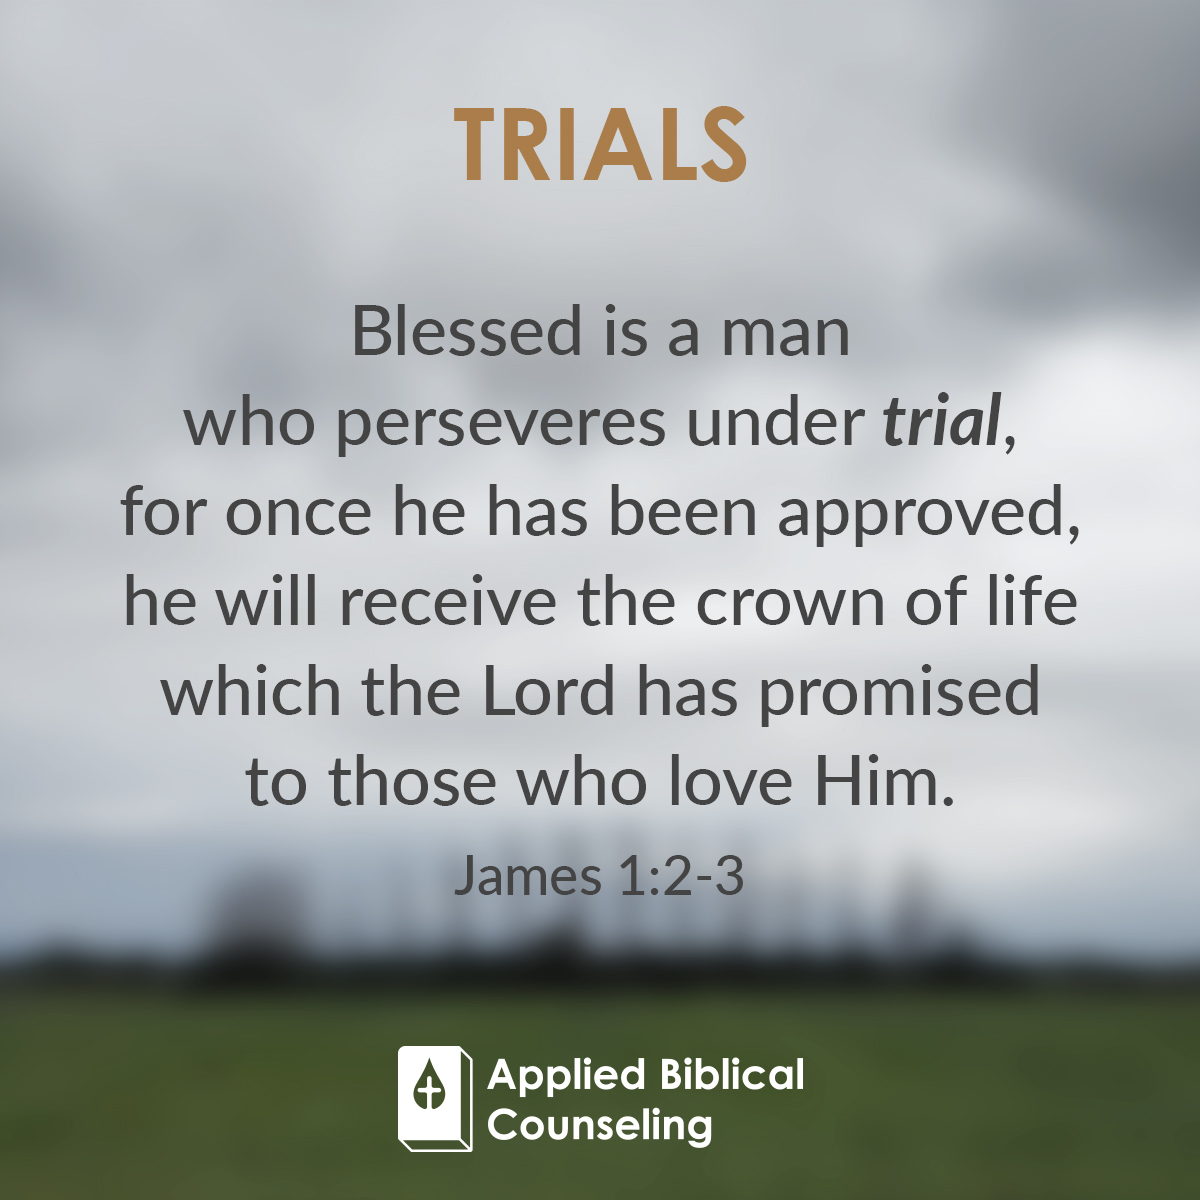 ABC_Facebook-w6-trials-4